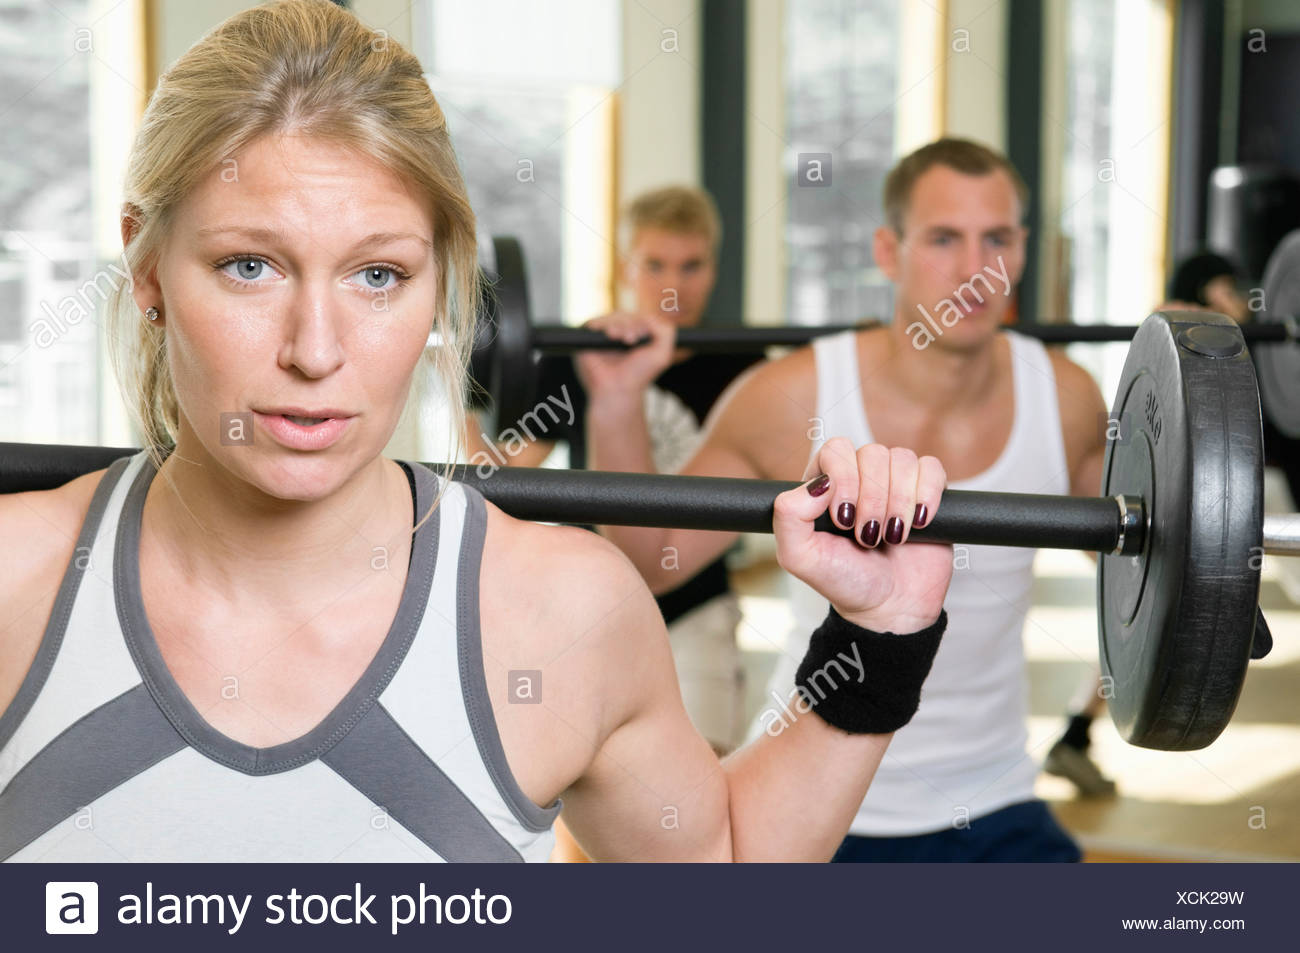 One girl and two guys working out - Stock Image